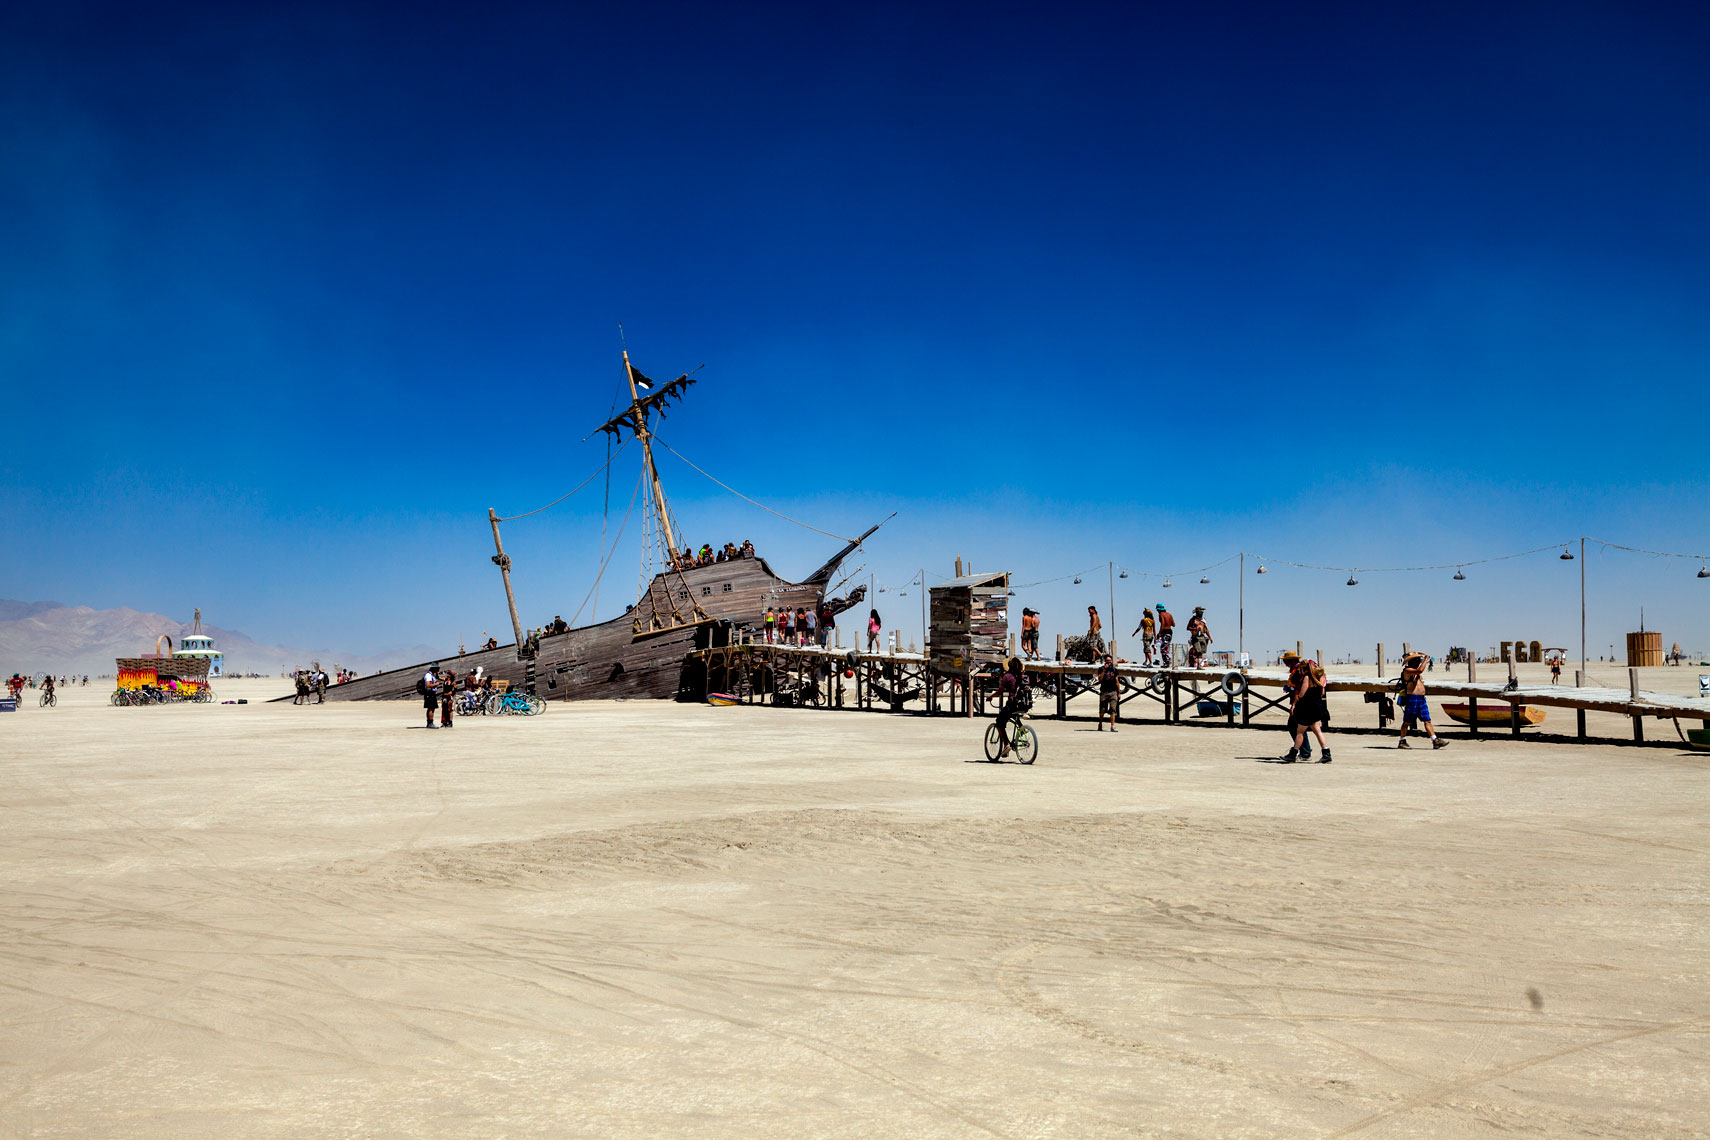 Burning Man Shipwreck